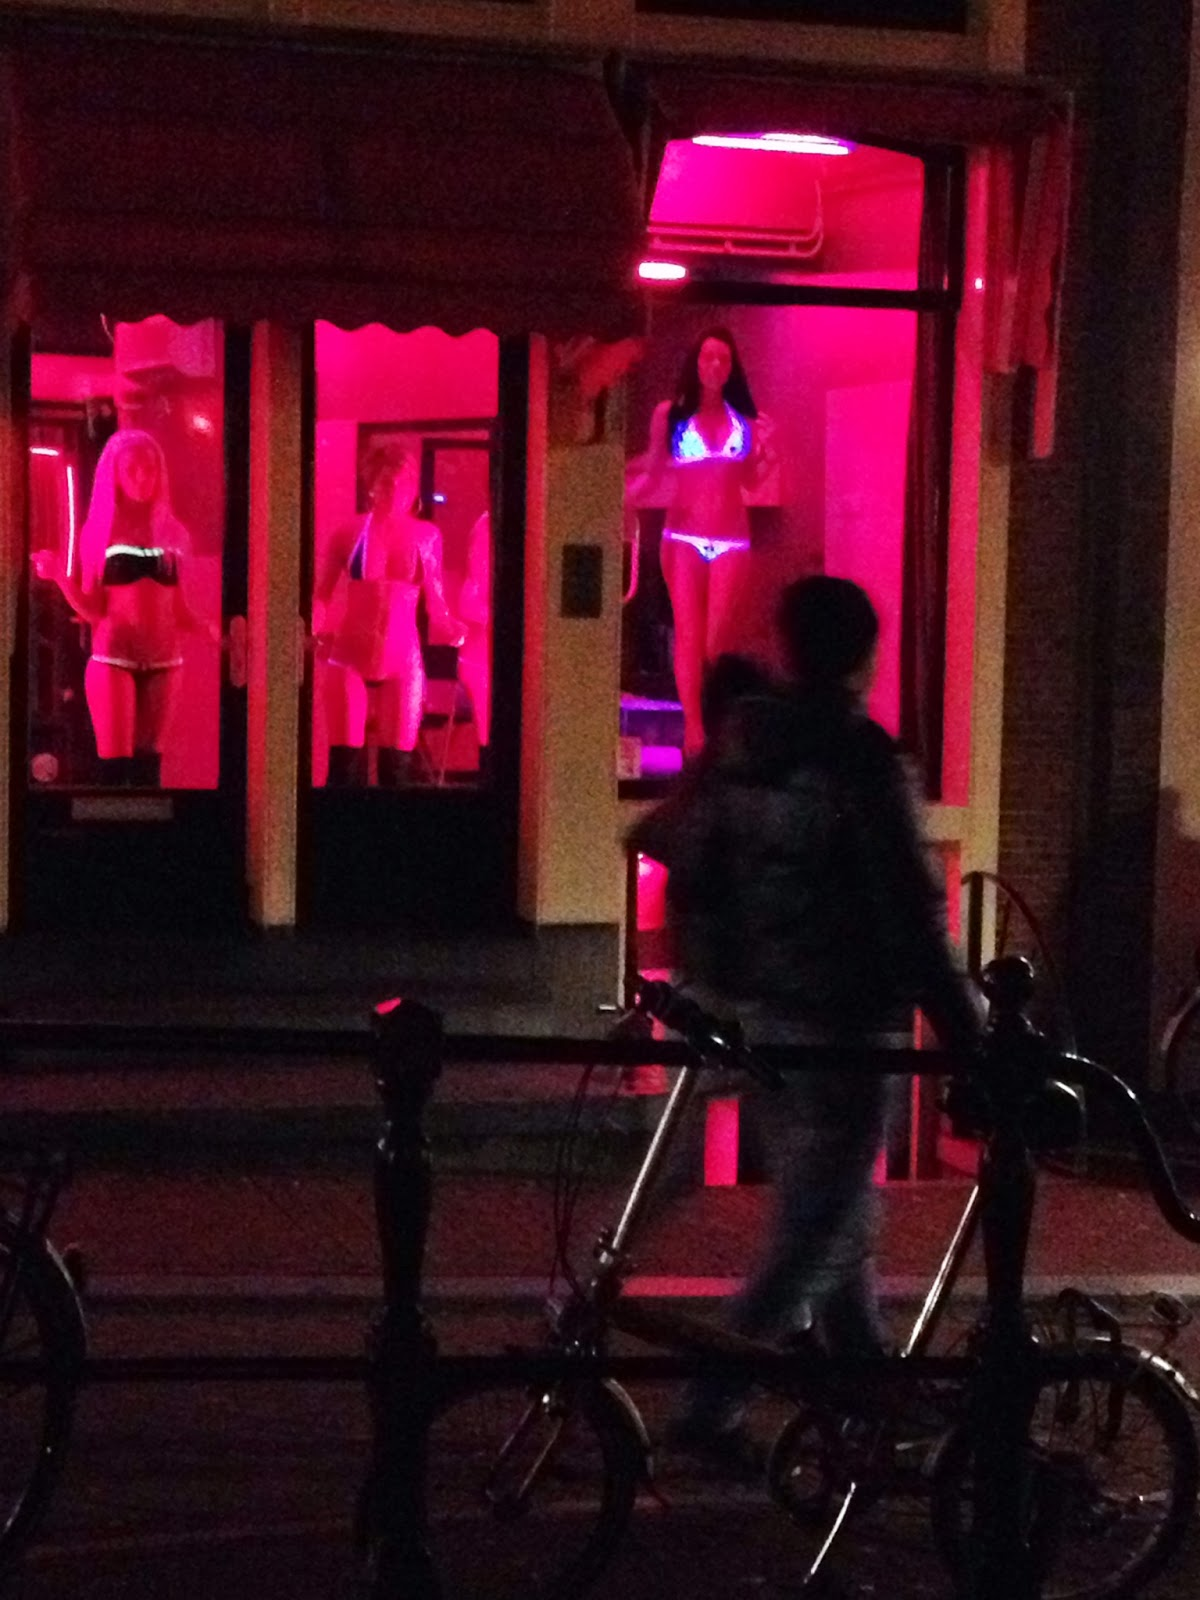 Amsterdam - It's hard not to look at the ladies in the Red Light District